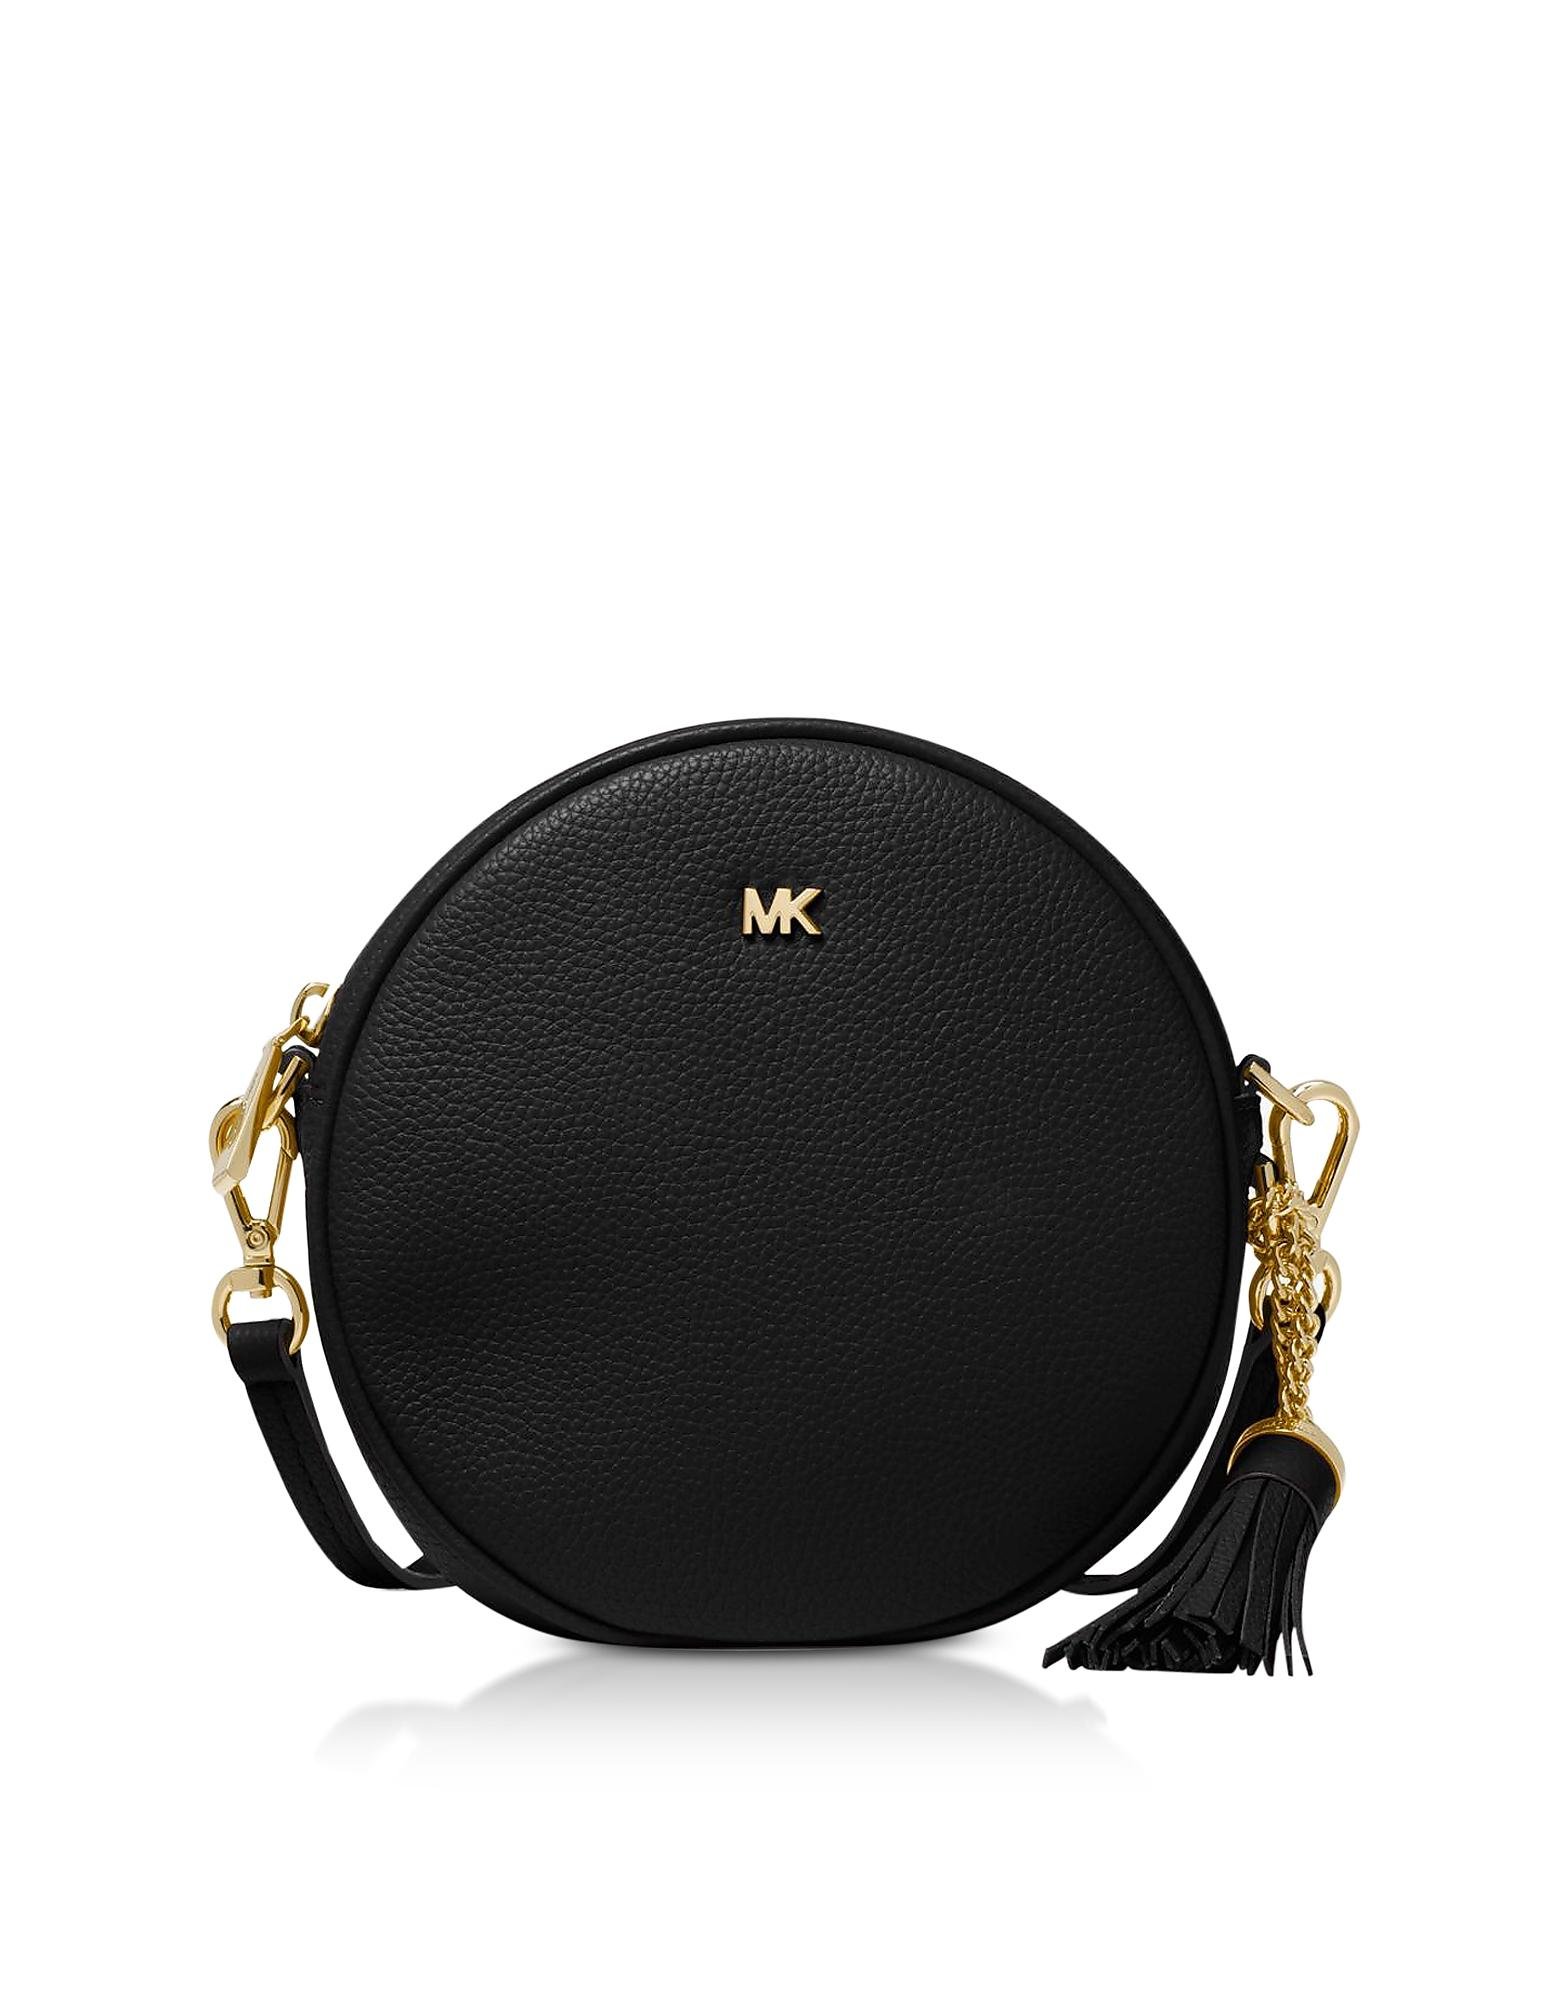 c3d106578640e Lyst - Michael Kors Pebbled Leather Canteen Crossbody in Black ...